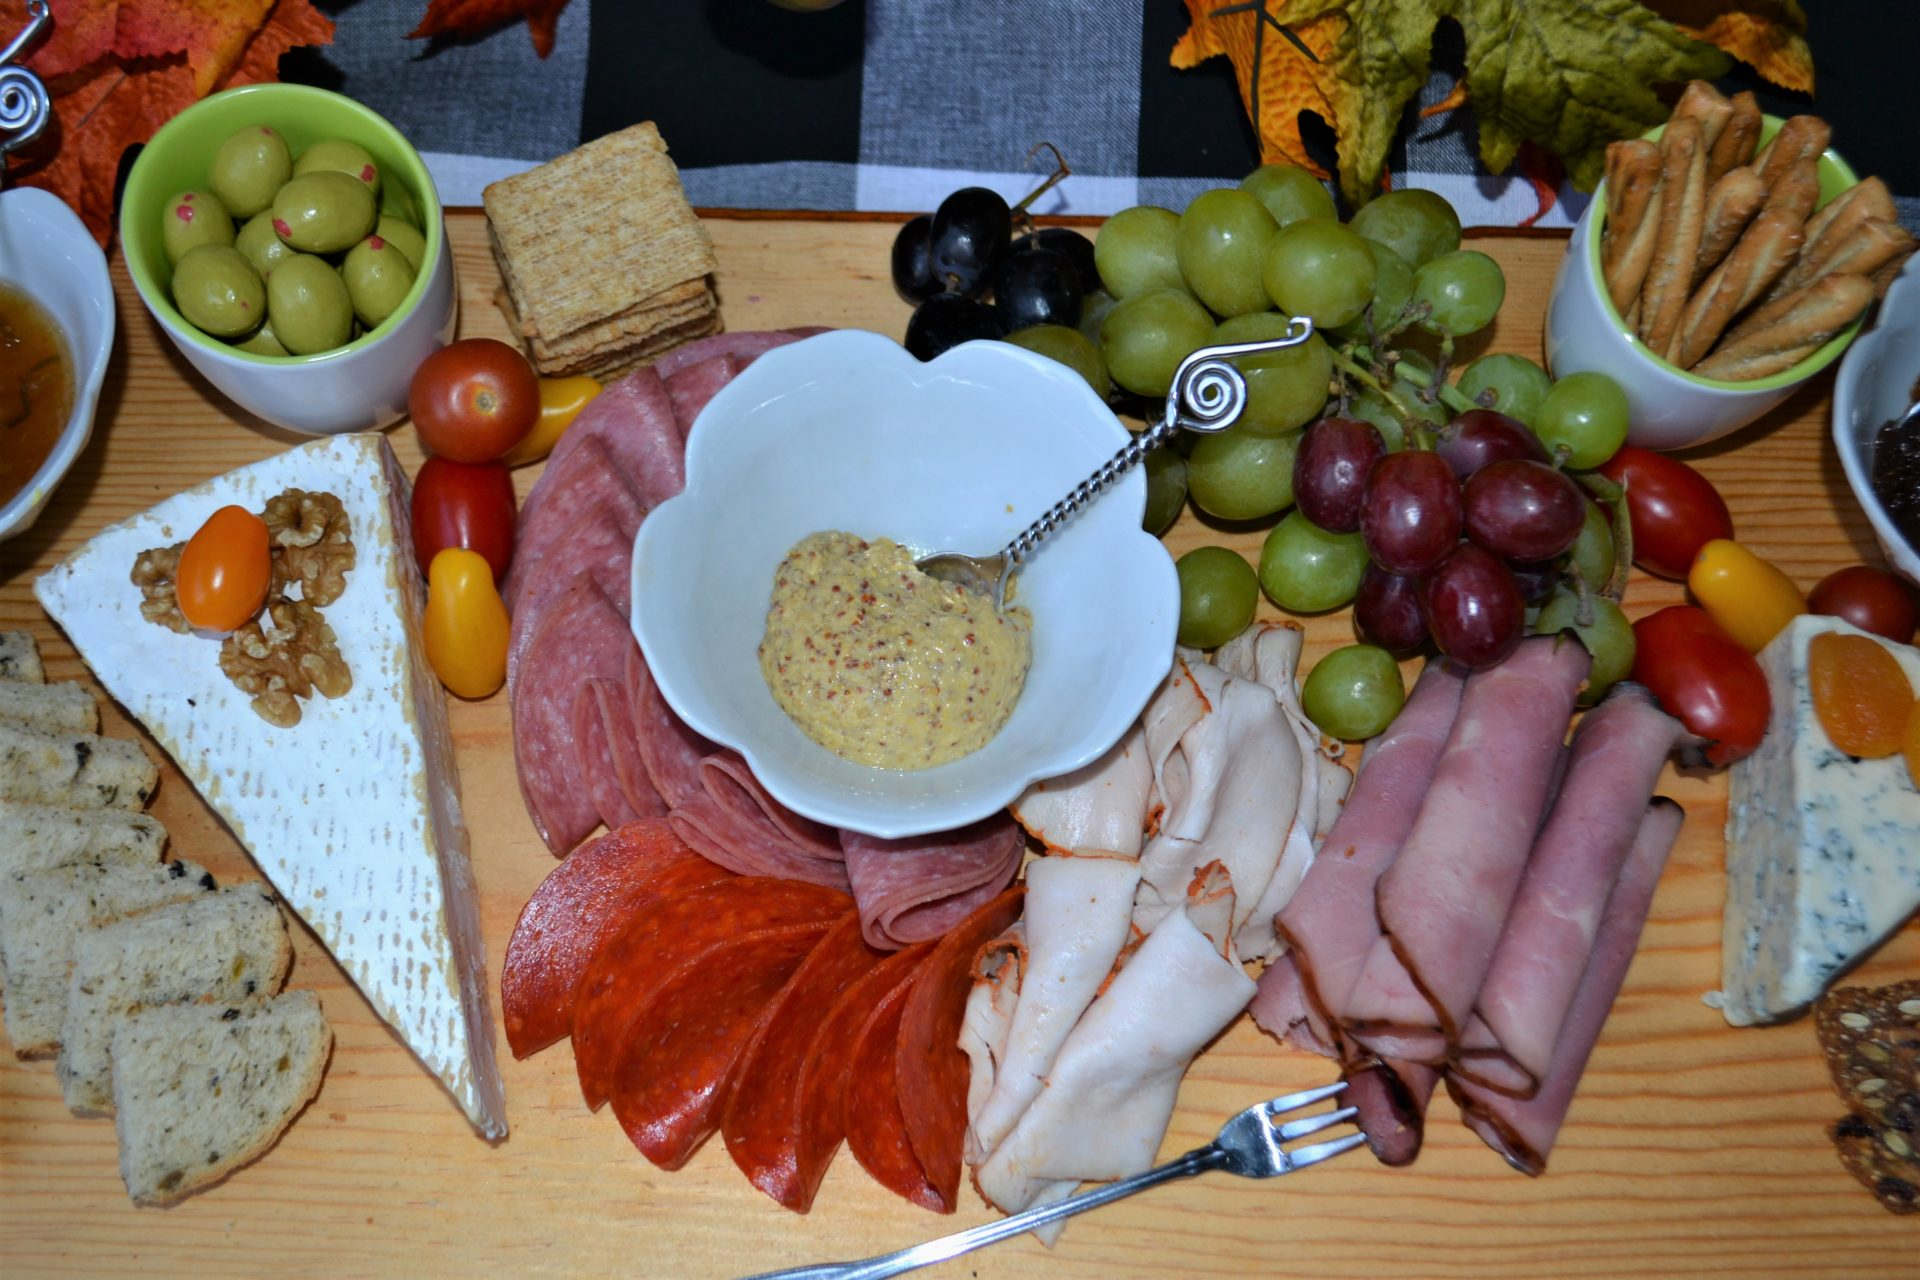 Select a large cutting board –or make one. How to on lizbushong.com Arrange trio of cheese -your choice on board. Arrange fresh fruit and spreads Nestle assorted crackers & breads that pair with the cheese and spreads Add dried fruits and nuts